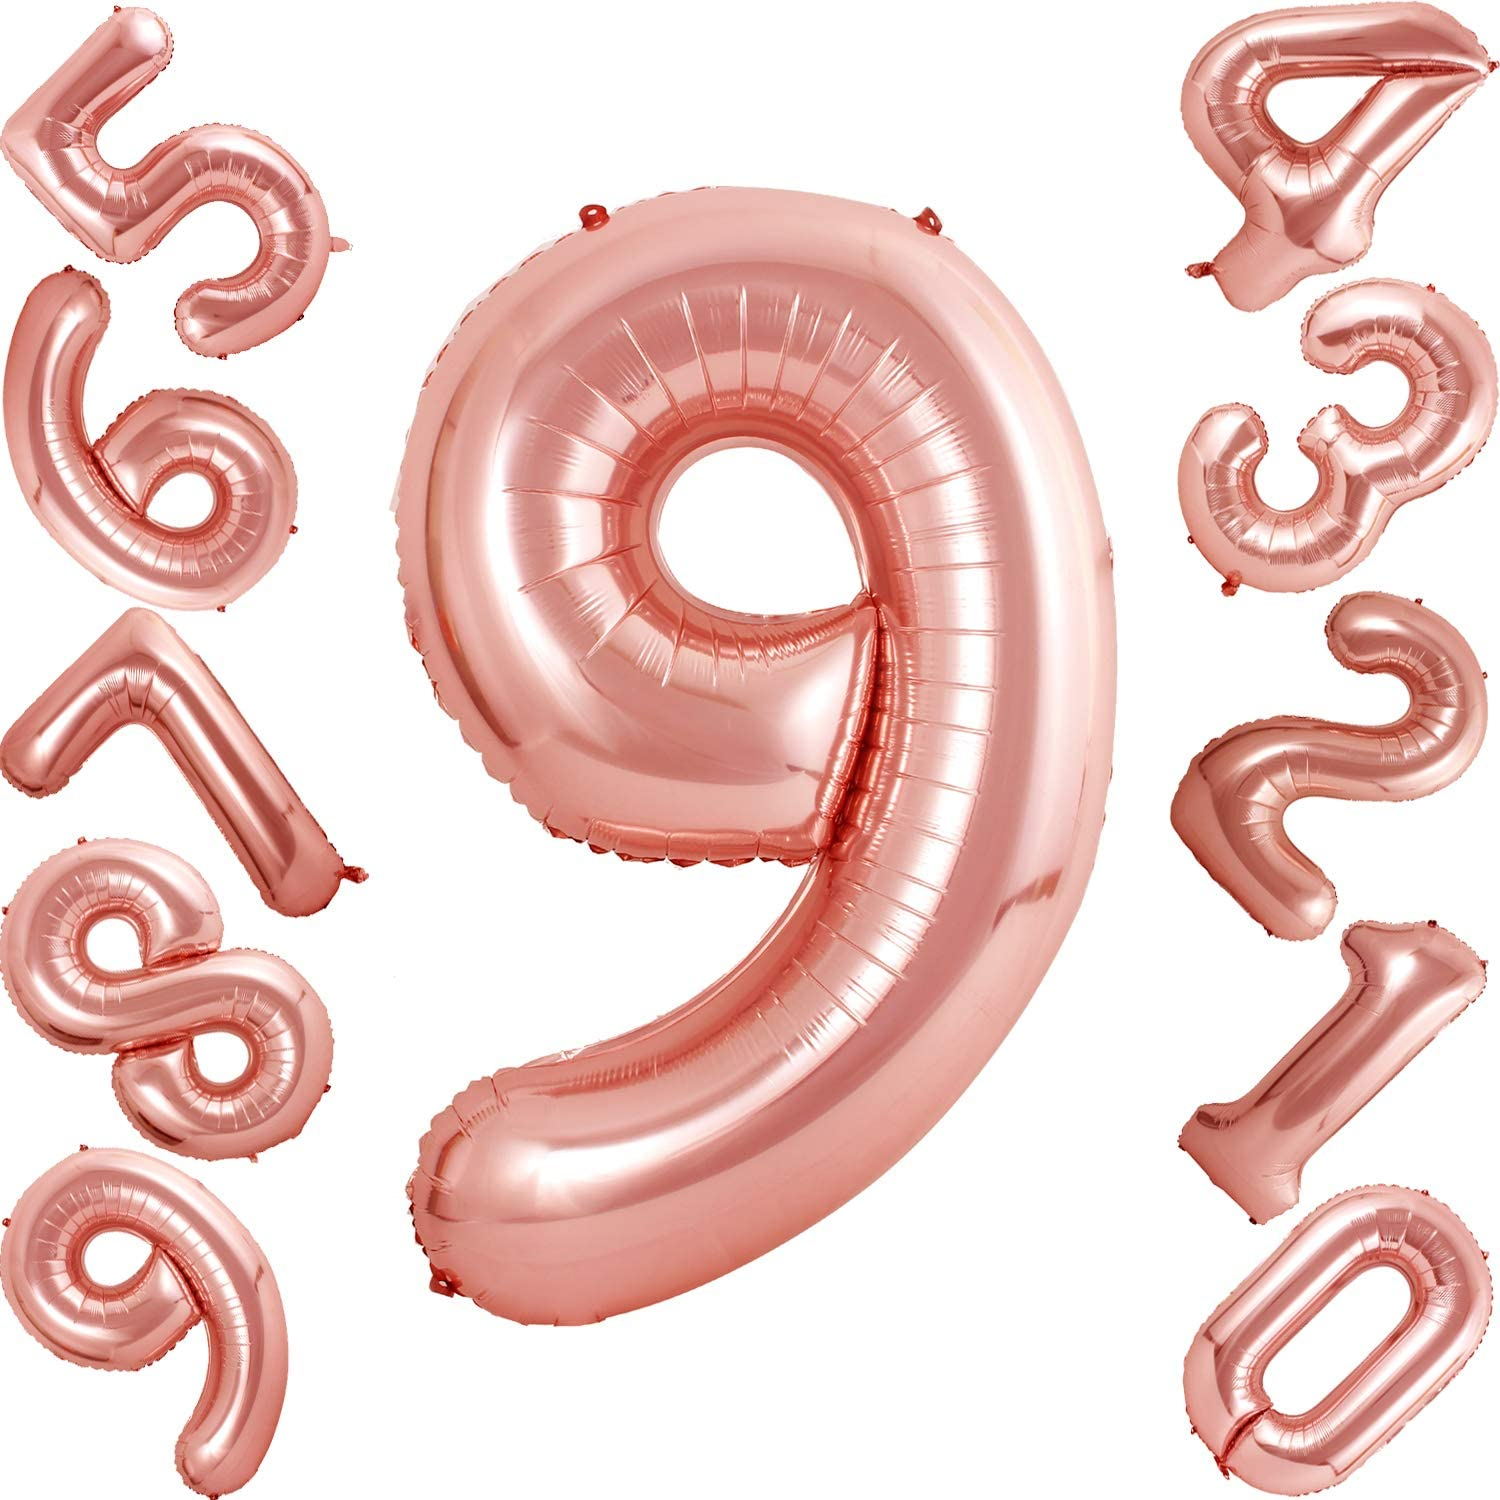 40 inch Rose Gold Number Balloons Helium Foil Balloon for Birthday Party Decorations Supplies Number 2 Balloon